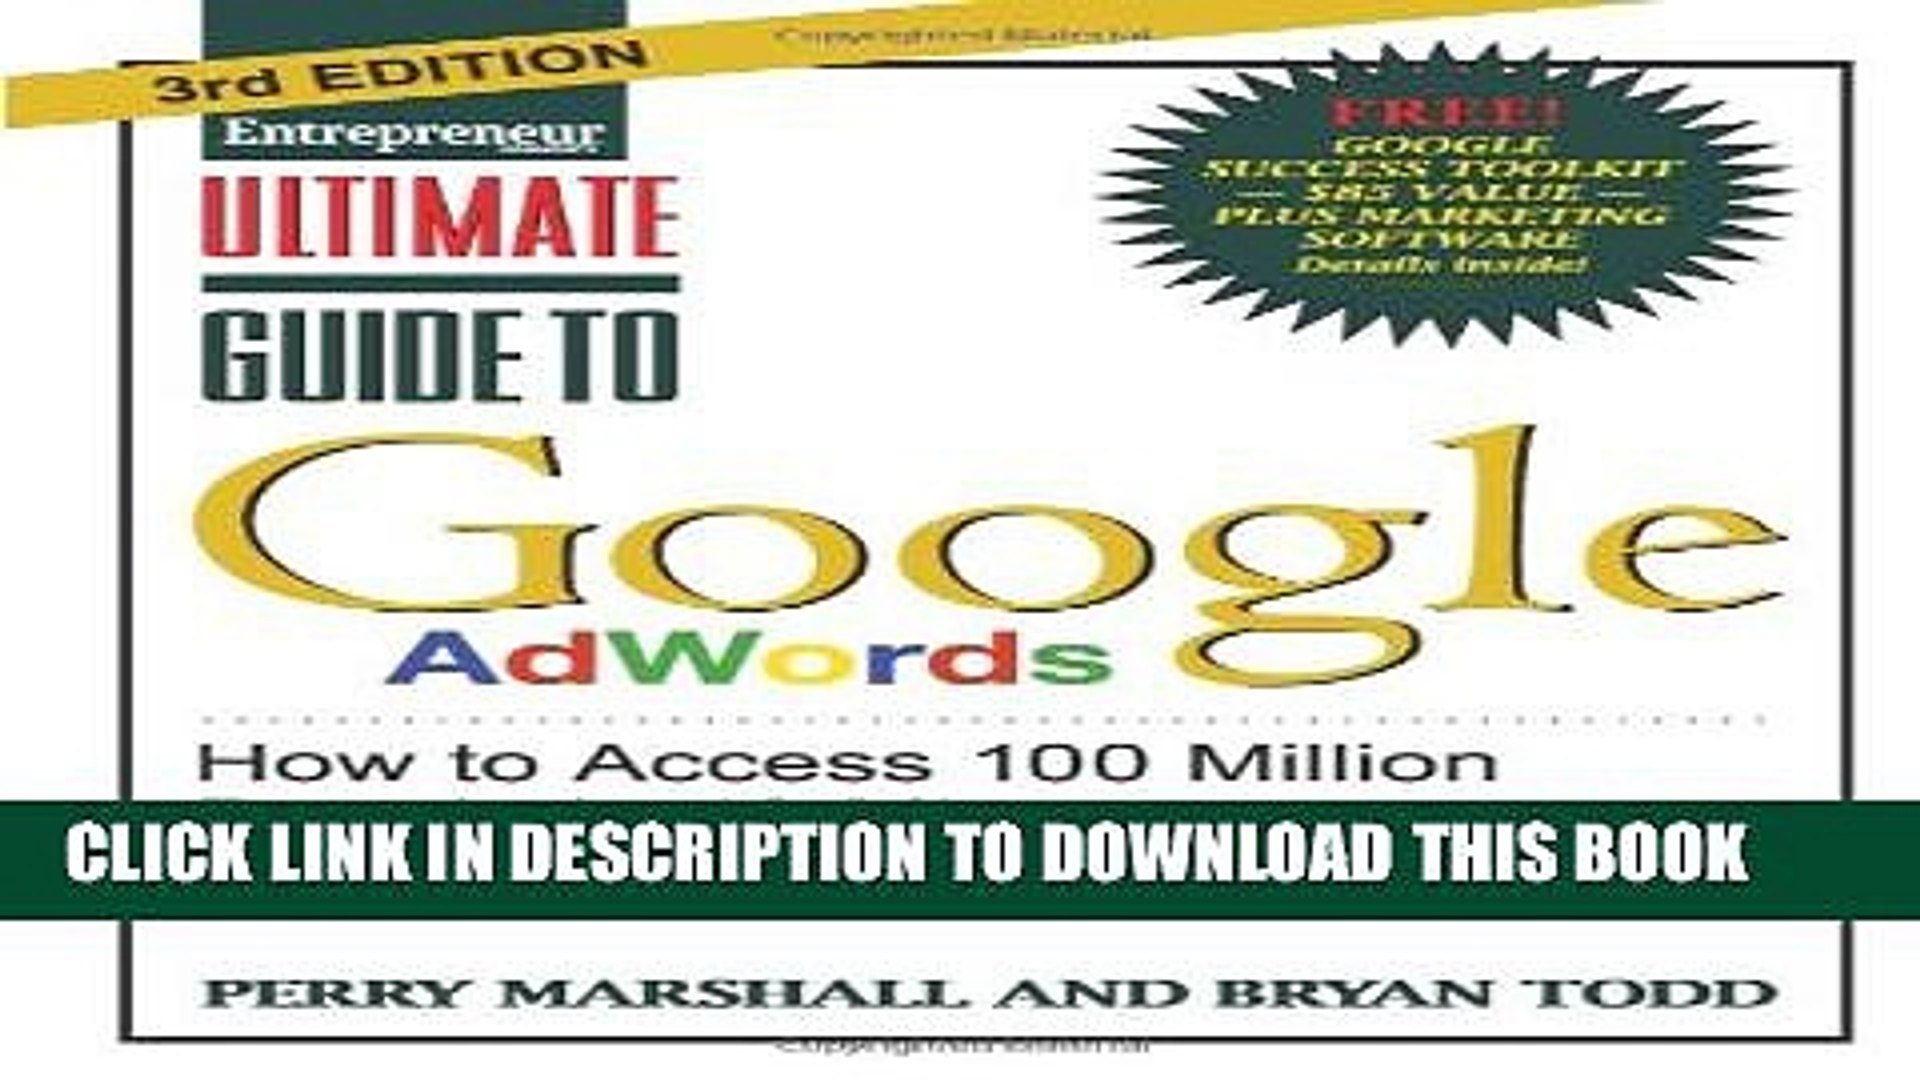 New Book Ultimate Guide to Google AdWords: How to Access 100 Million People in 10 Minutes